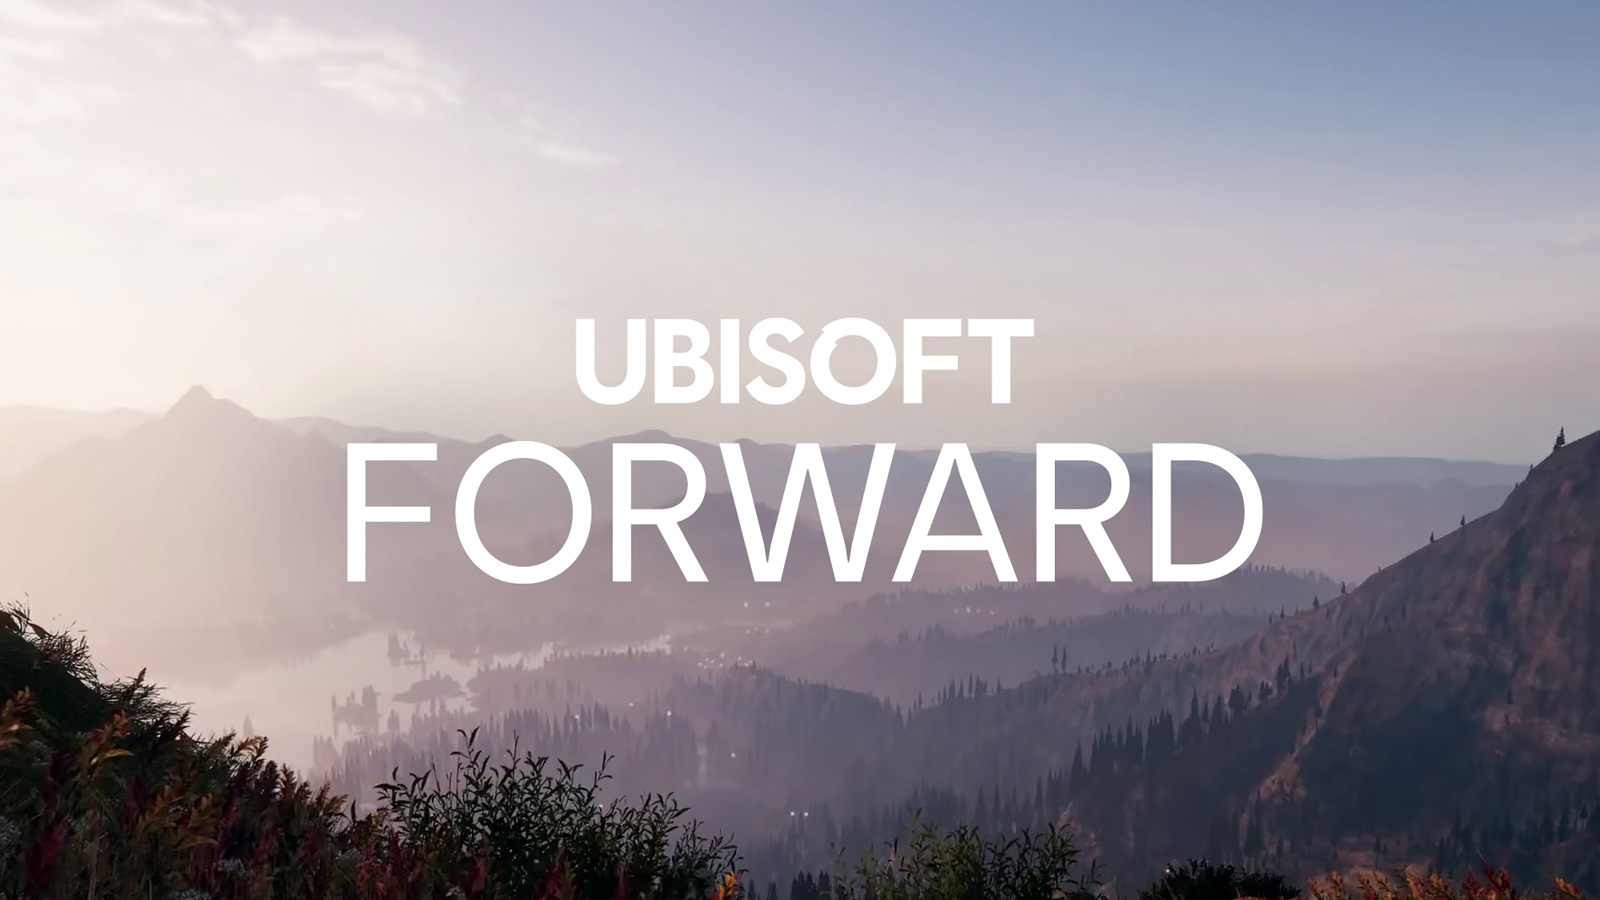 Ubisoft Fordward: Assassin's Creed Valhalla, Far Cry 6, Watch Dogs Legion,…